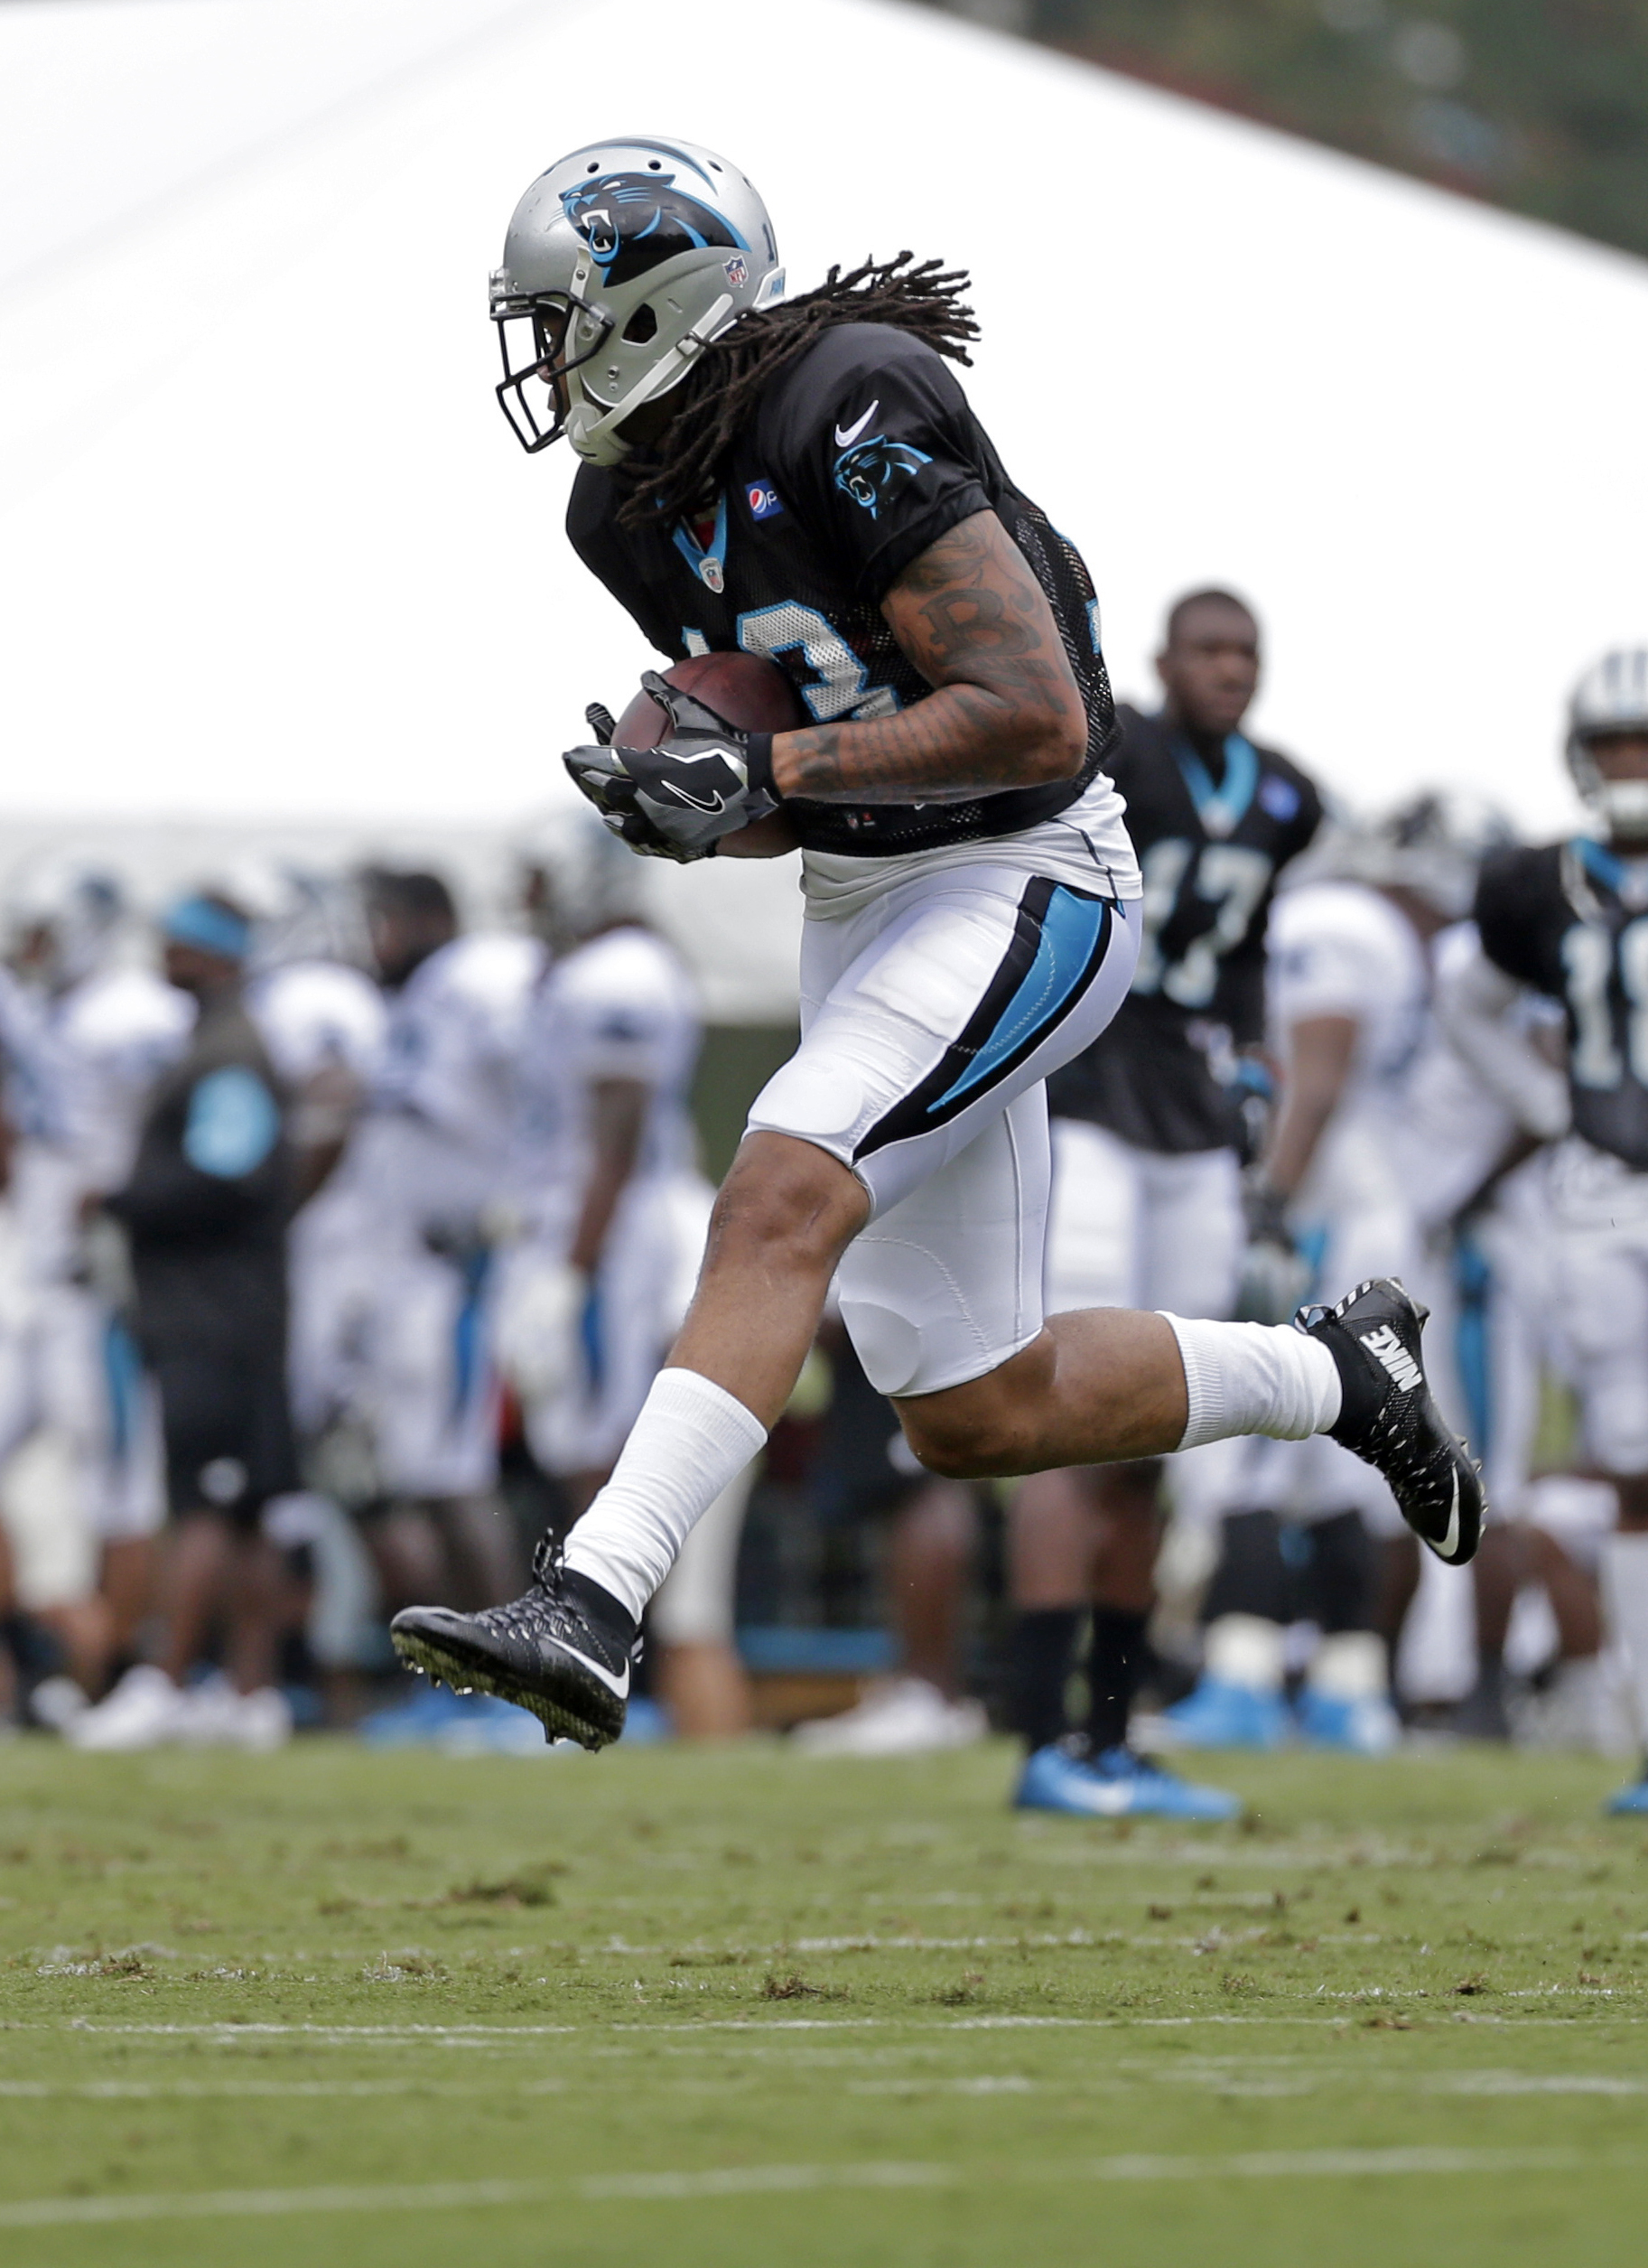 FILE - In this Aug. 8, 2016, file photo, Carolina Panthers' Kelvin Benjamin catches a pass during an NFL training camp practice in Spartanburg, S.C. Cam Newton became an NFL Most Valuable Player and led his team to the Super Bowl last season without the s